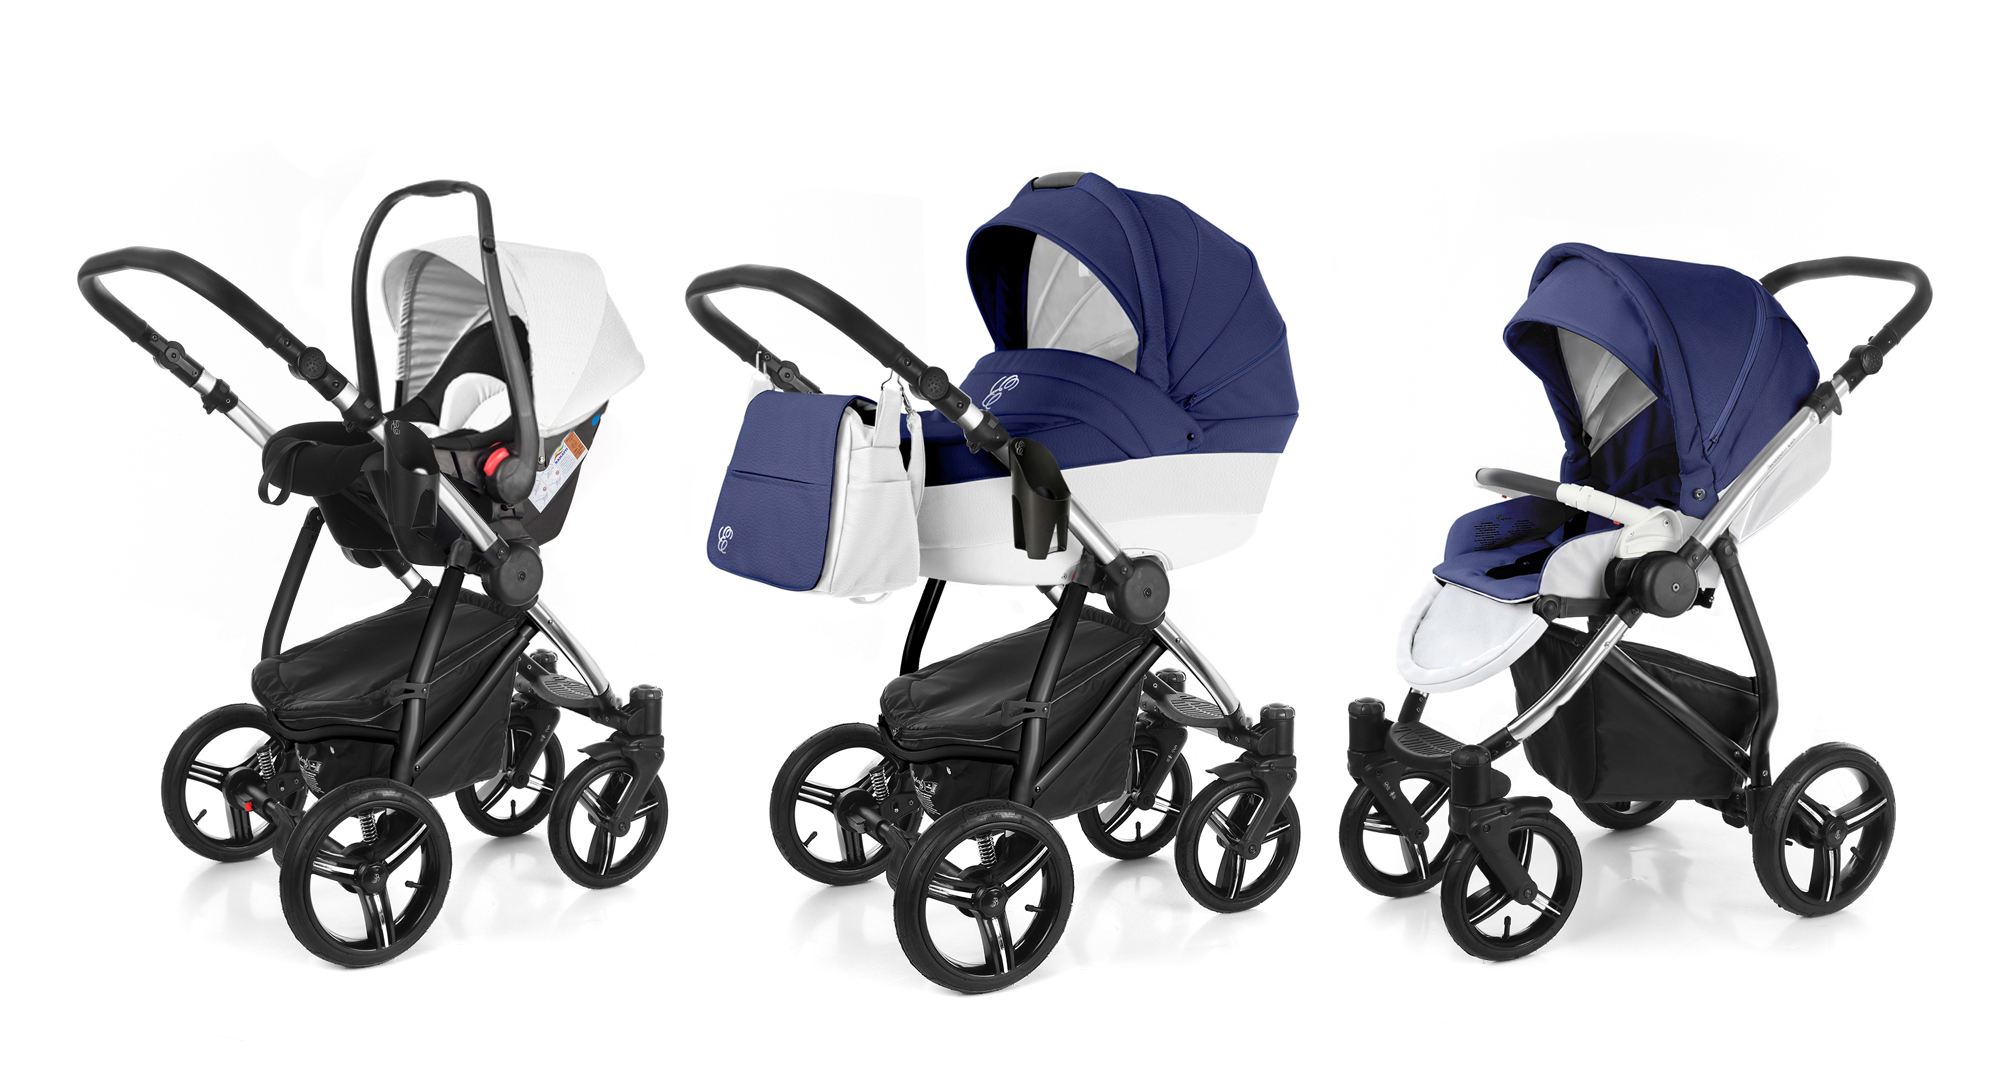 Коляска 3 в 1 Esspero Grand Newborn Lux (шасси Chrome) Mar leatherette